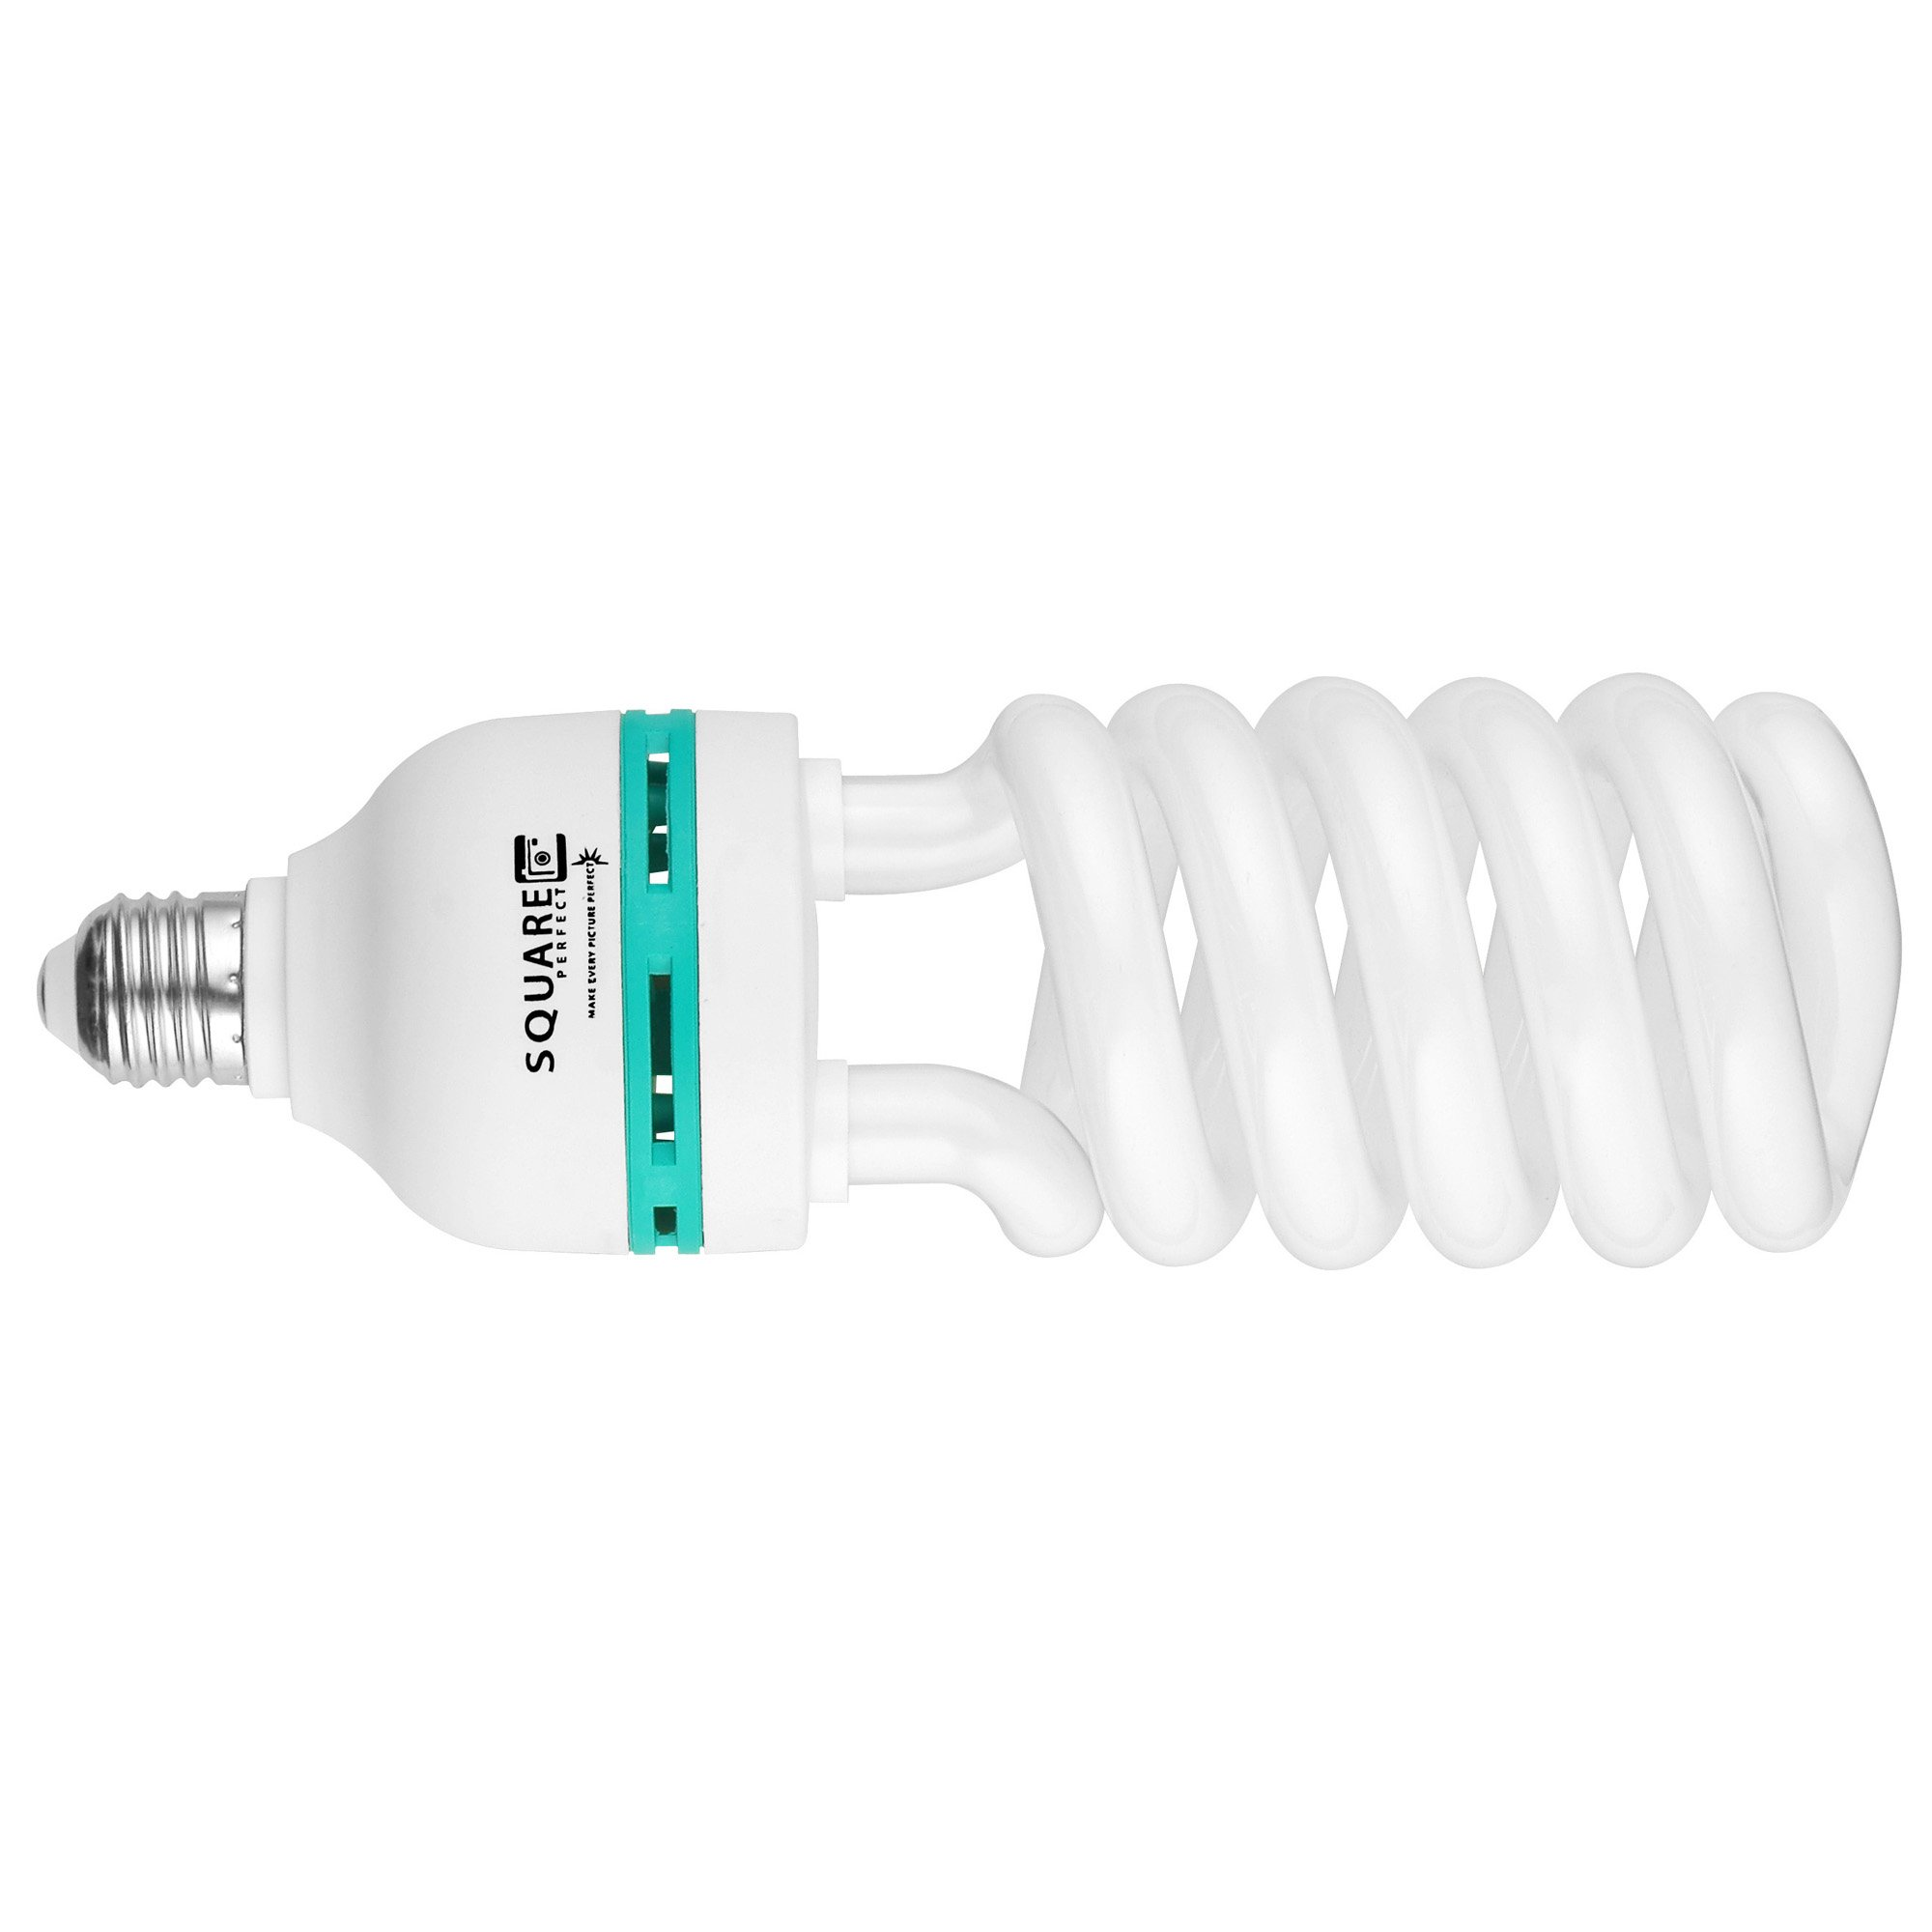 Square Perfect 3078 Professional Quality 65-Watt Compact Fluorescent Full Spectrum Photo Bulb